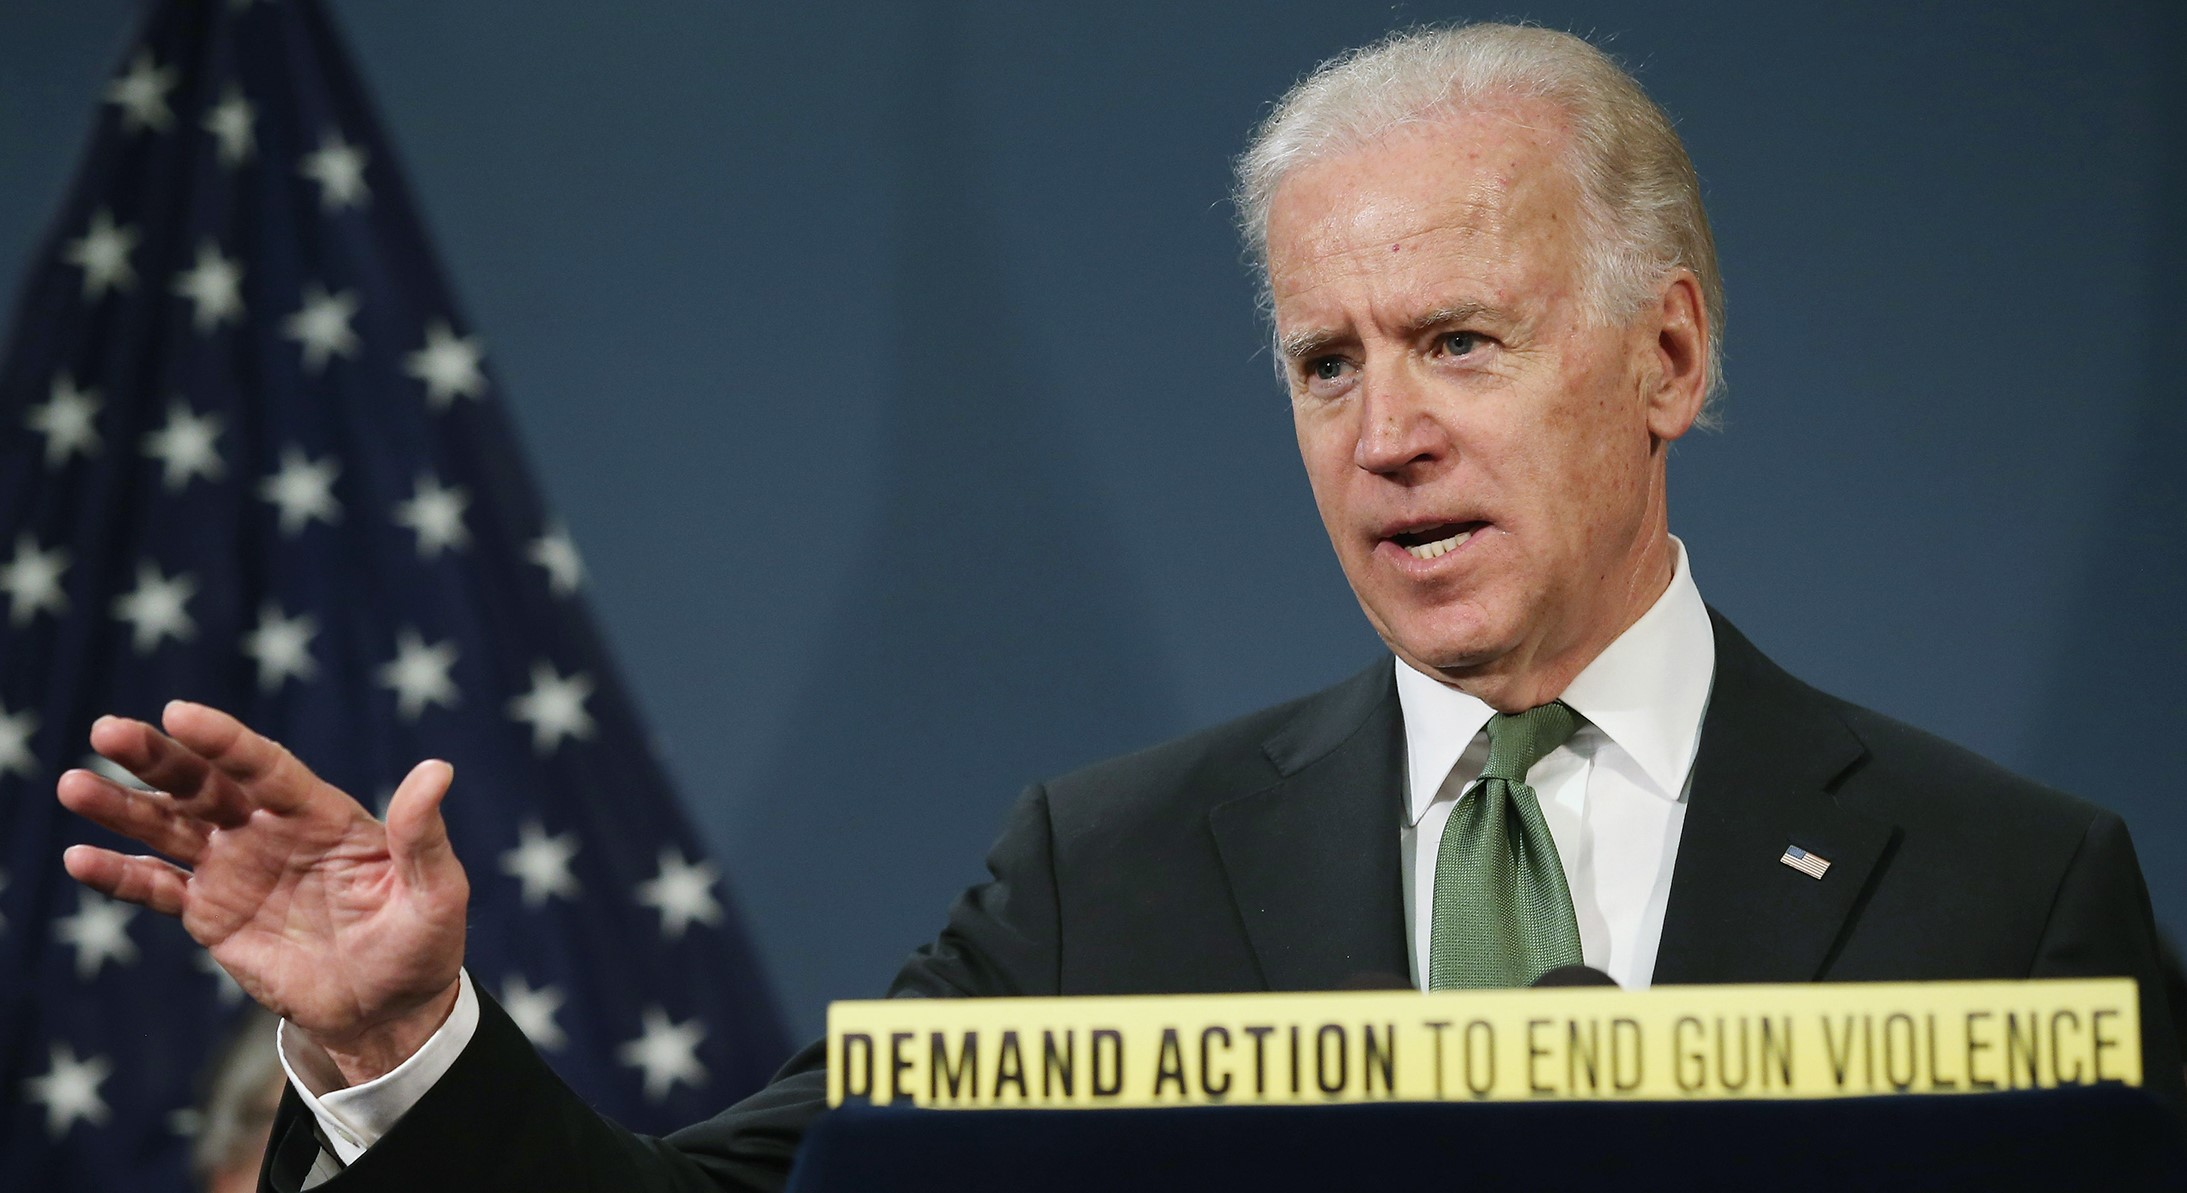 Joe Biden Takes on the Task of Responding to Gun Violence